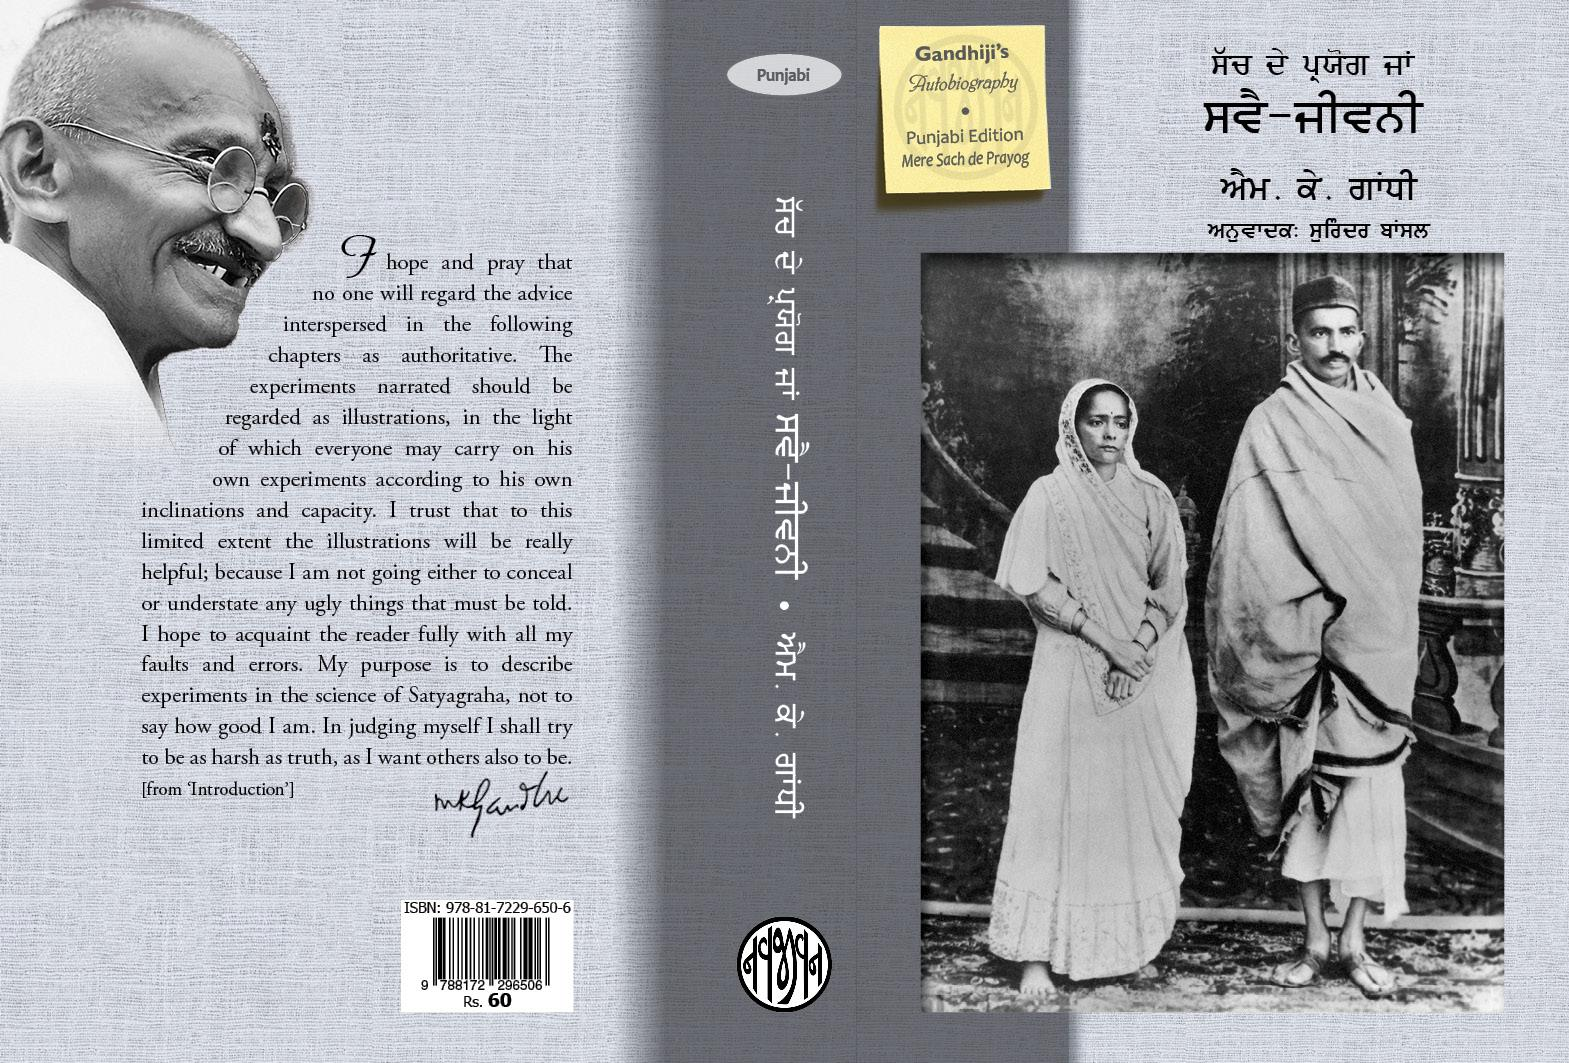 Mahatma Gandhi's autobiography will be available in